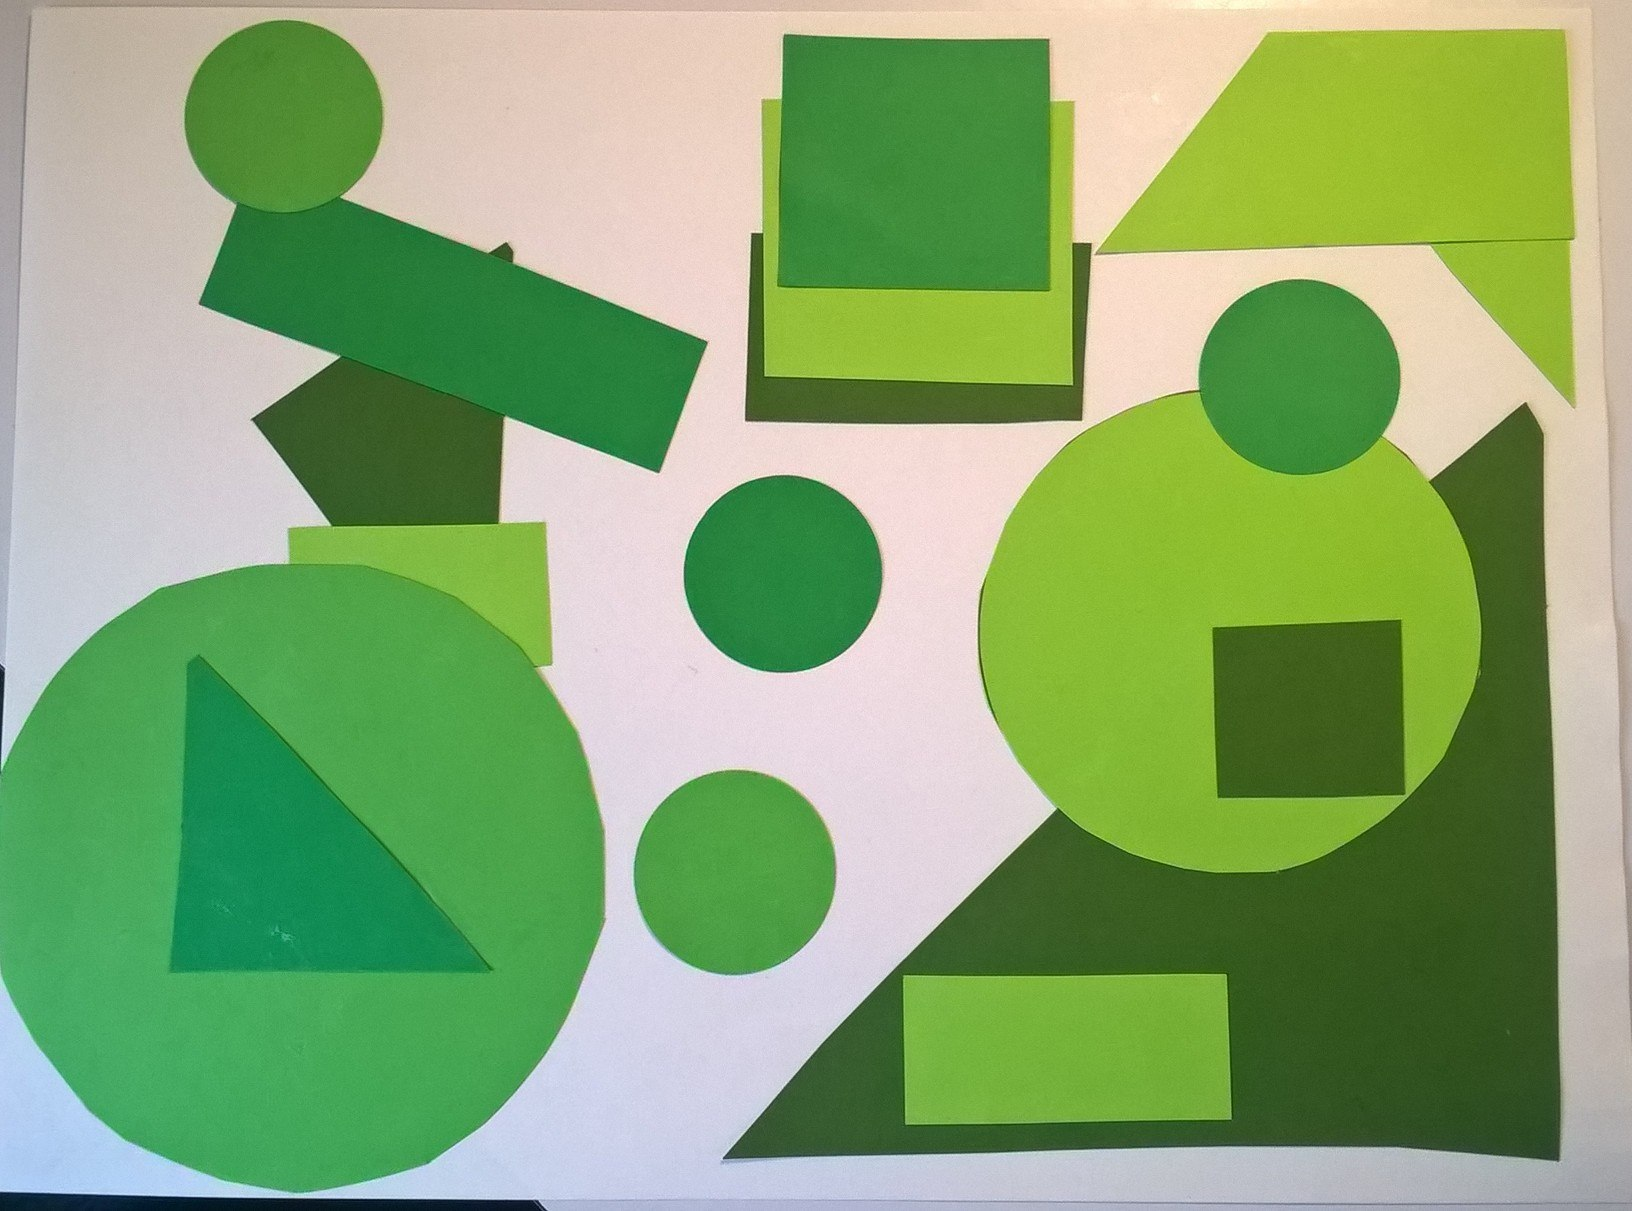 shape collage using green geometric shapes